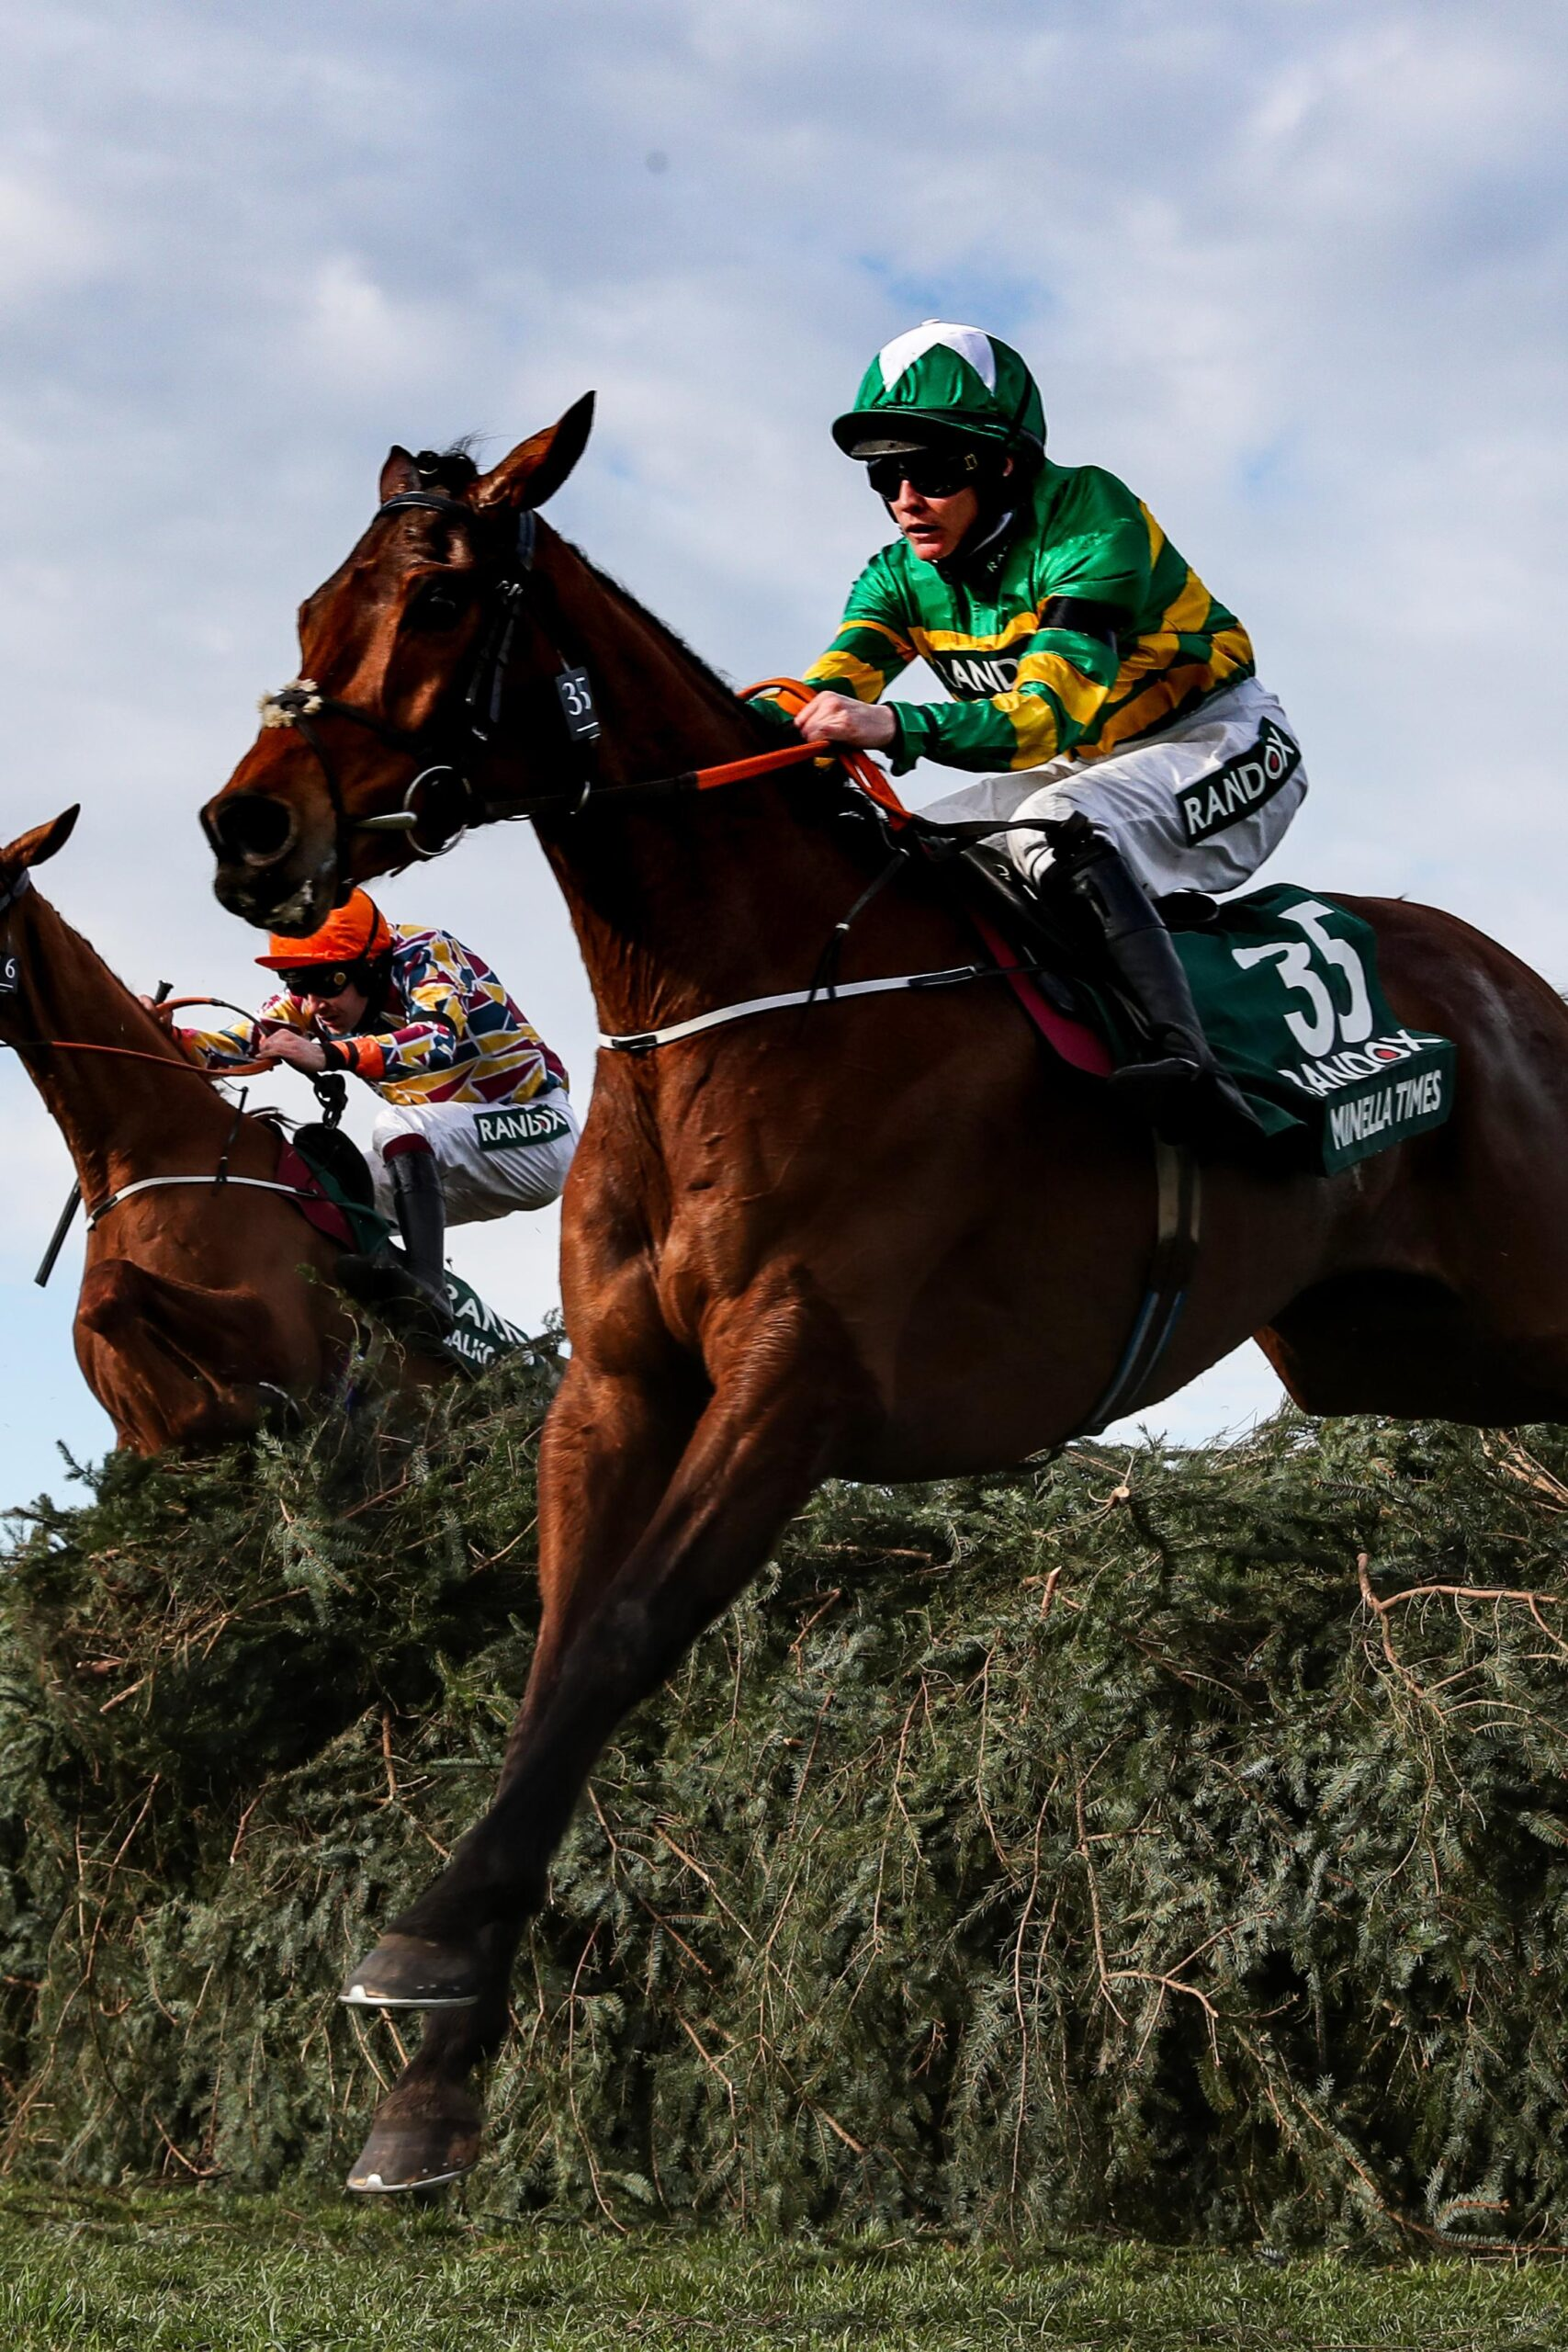 National hunt race types